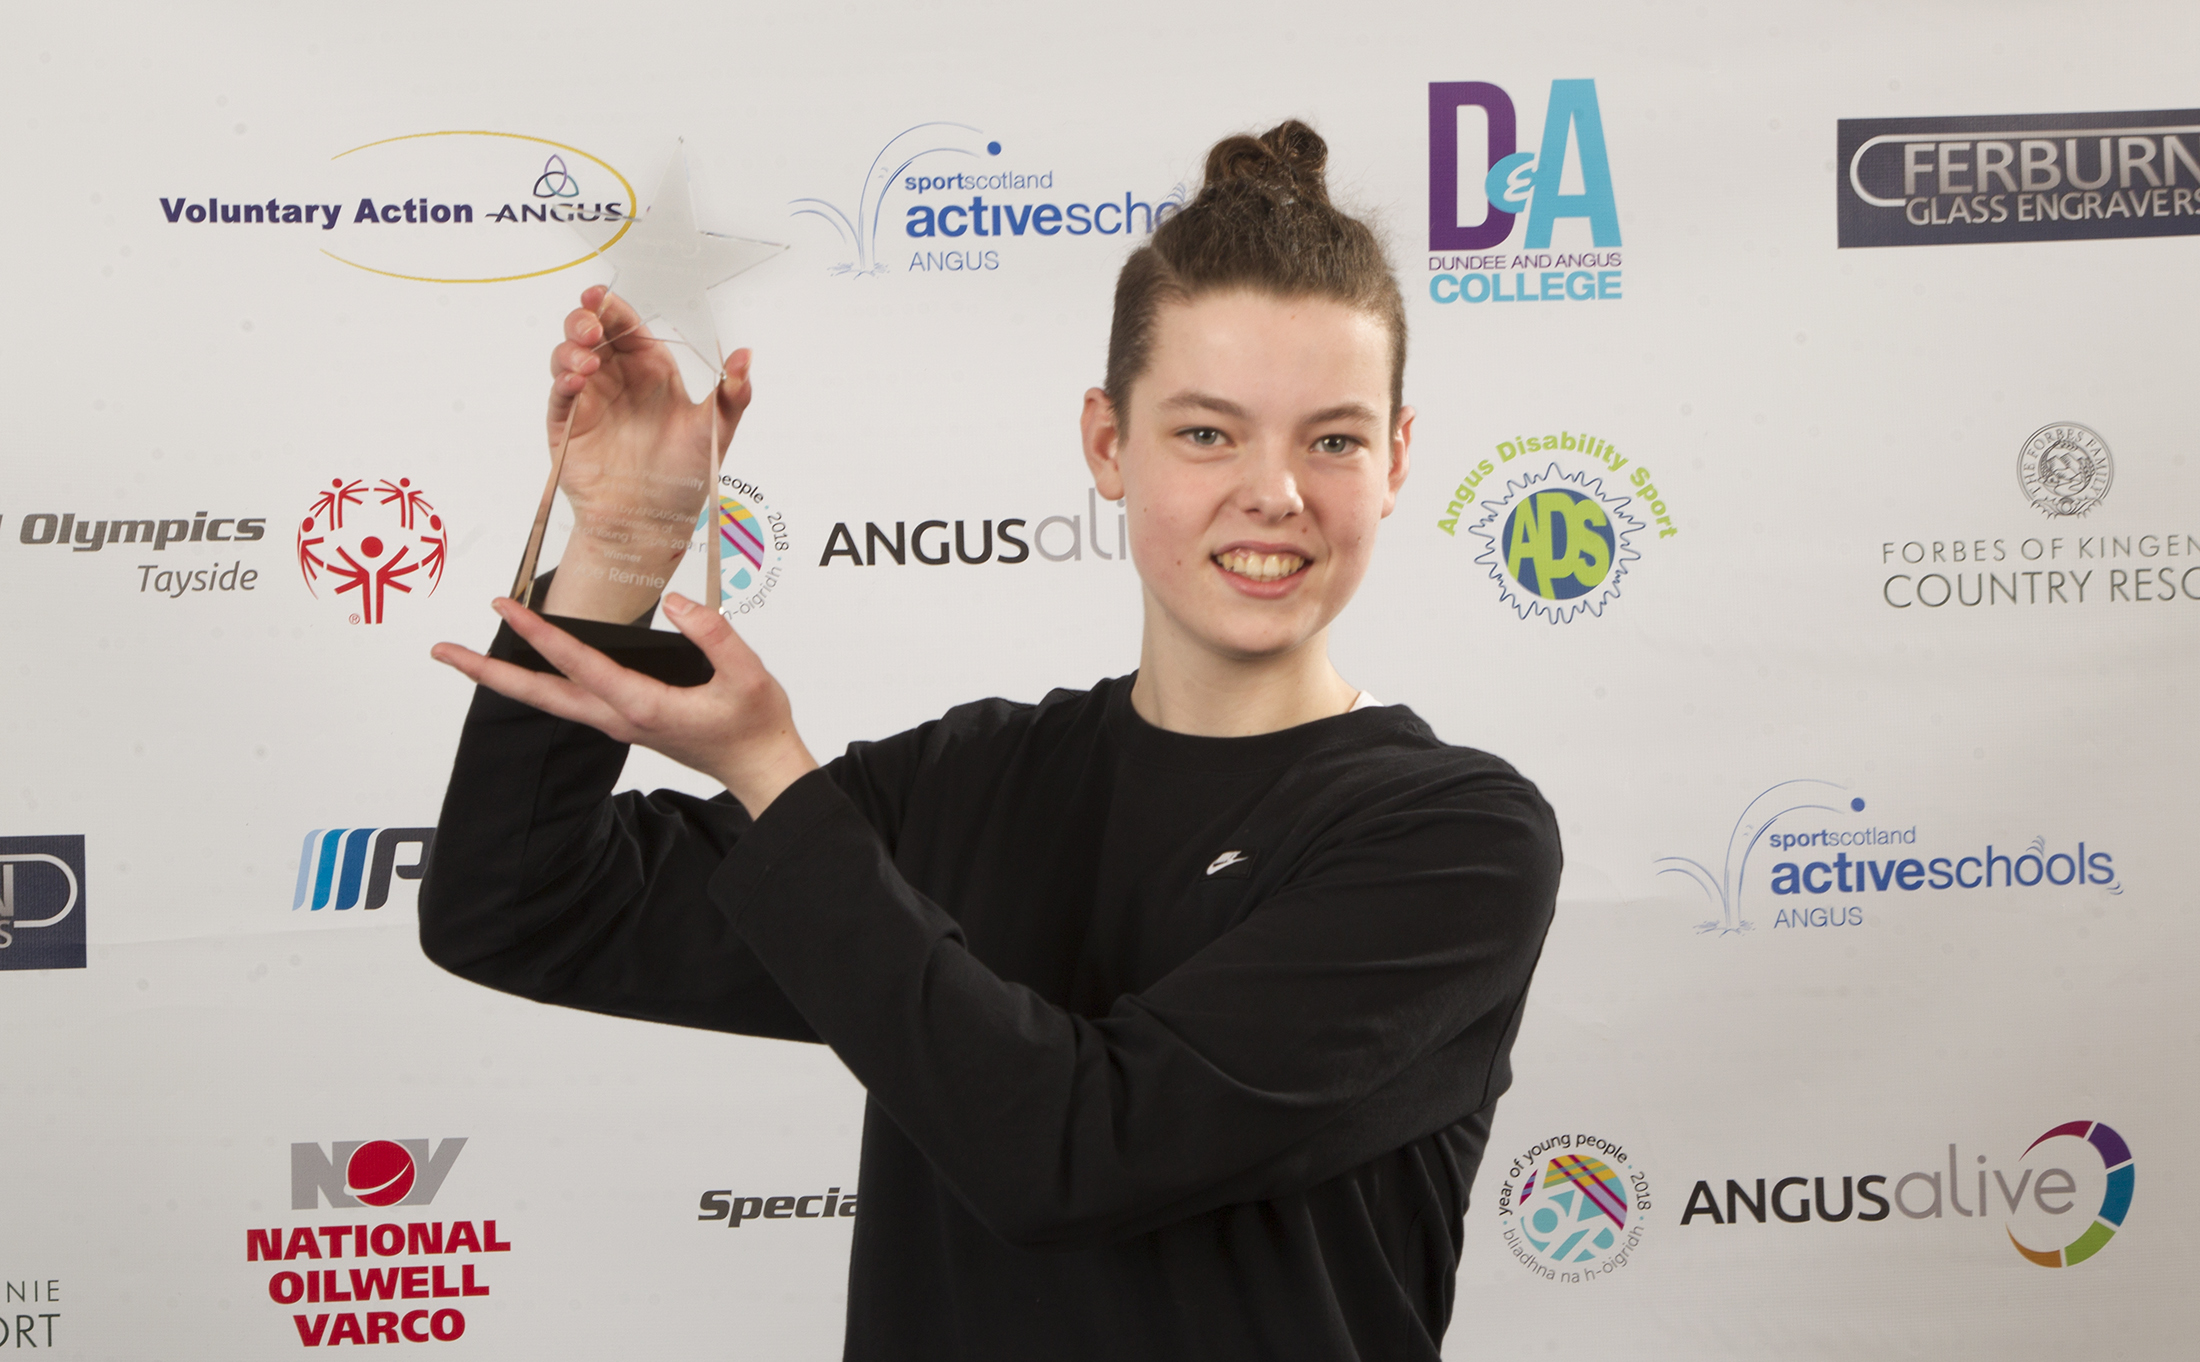 Angus.Young Sports Personality of the Year Zoe Rennie